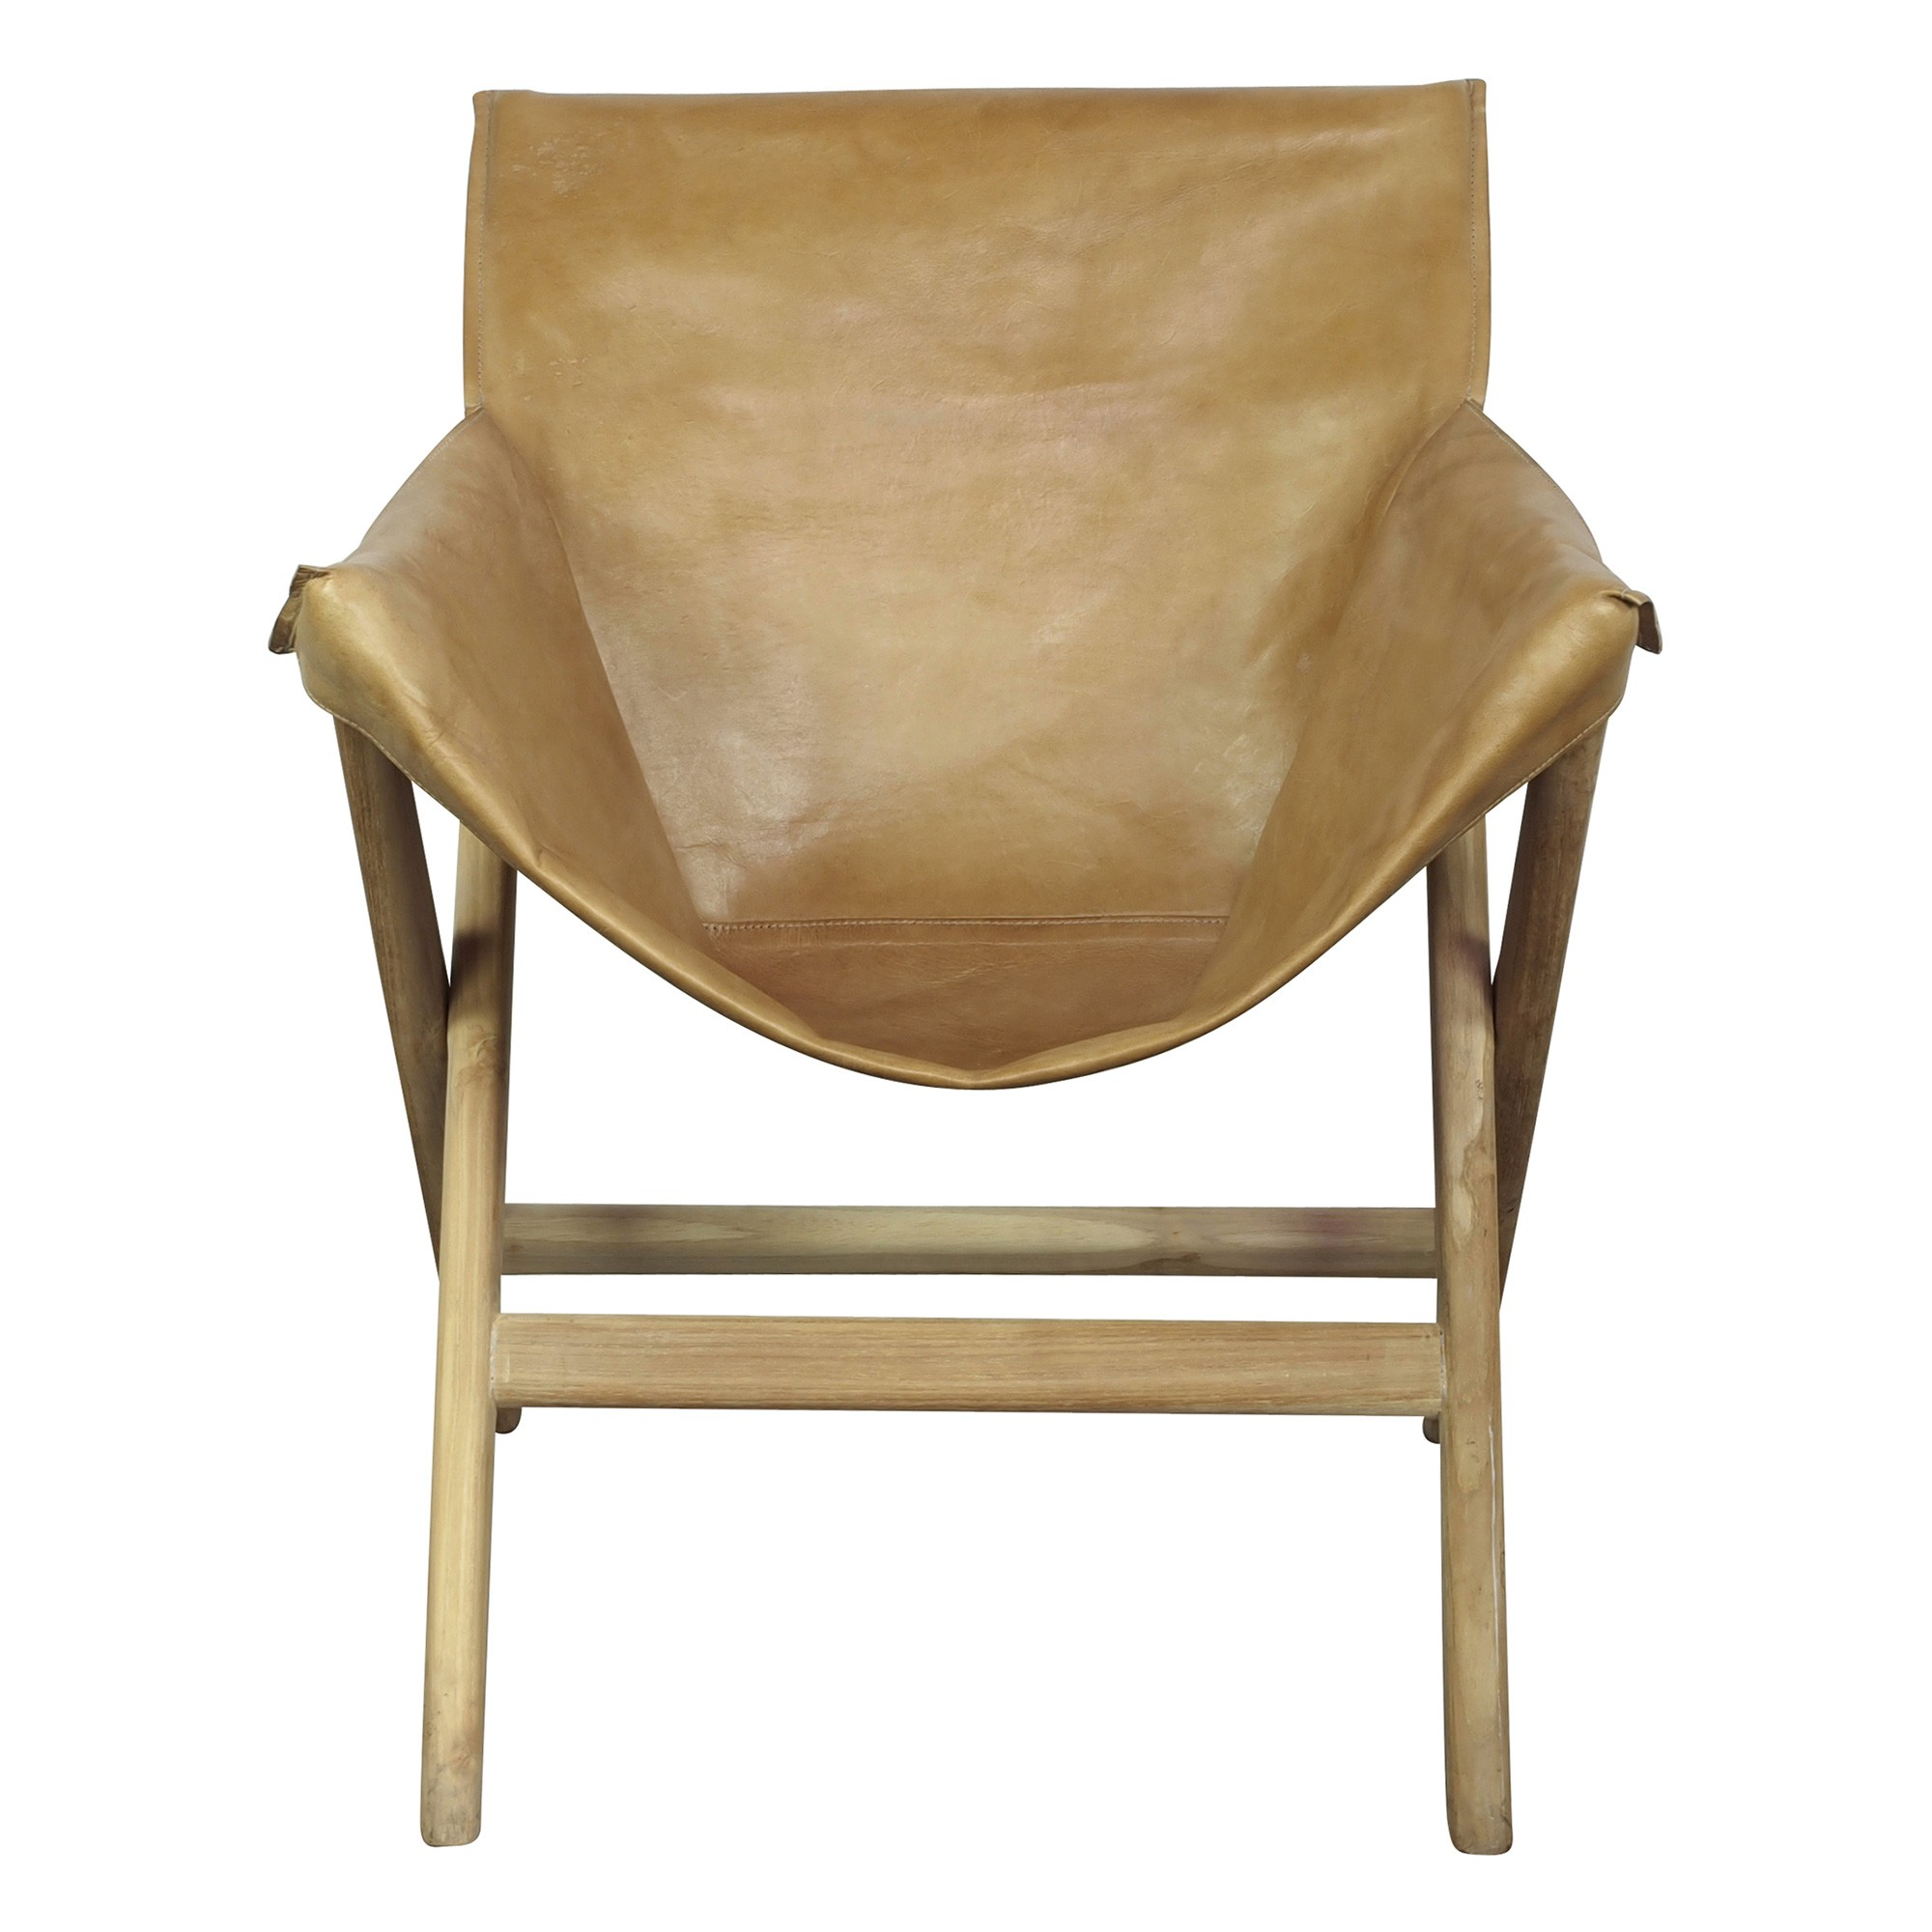 Glove Leather & Teak Chair, Caramel